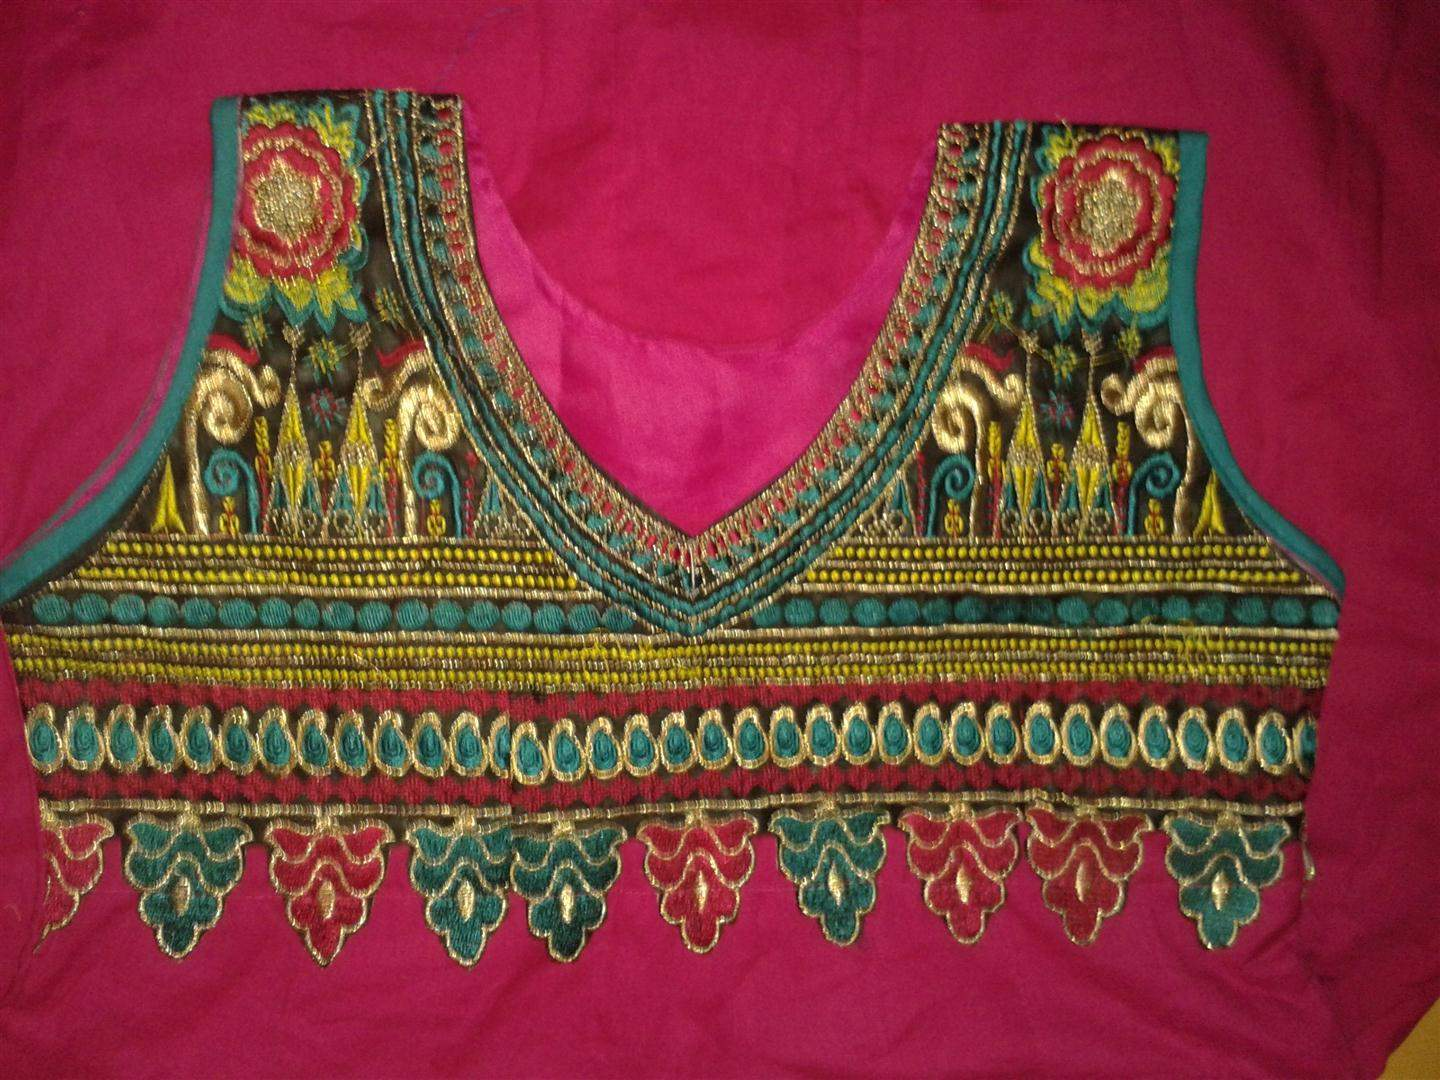 http://img.techshristi.com/images/embroideryshristi/20140129193258large.jpg